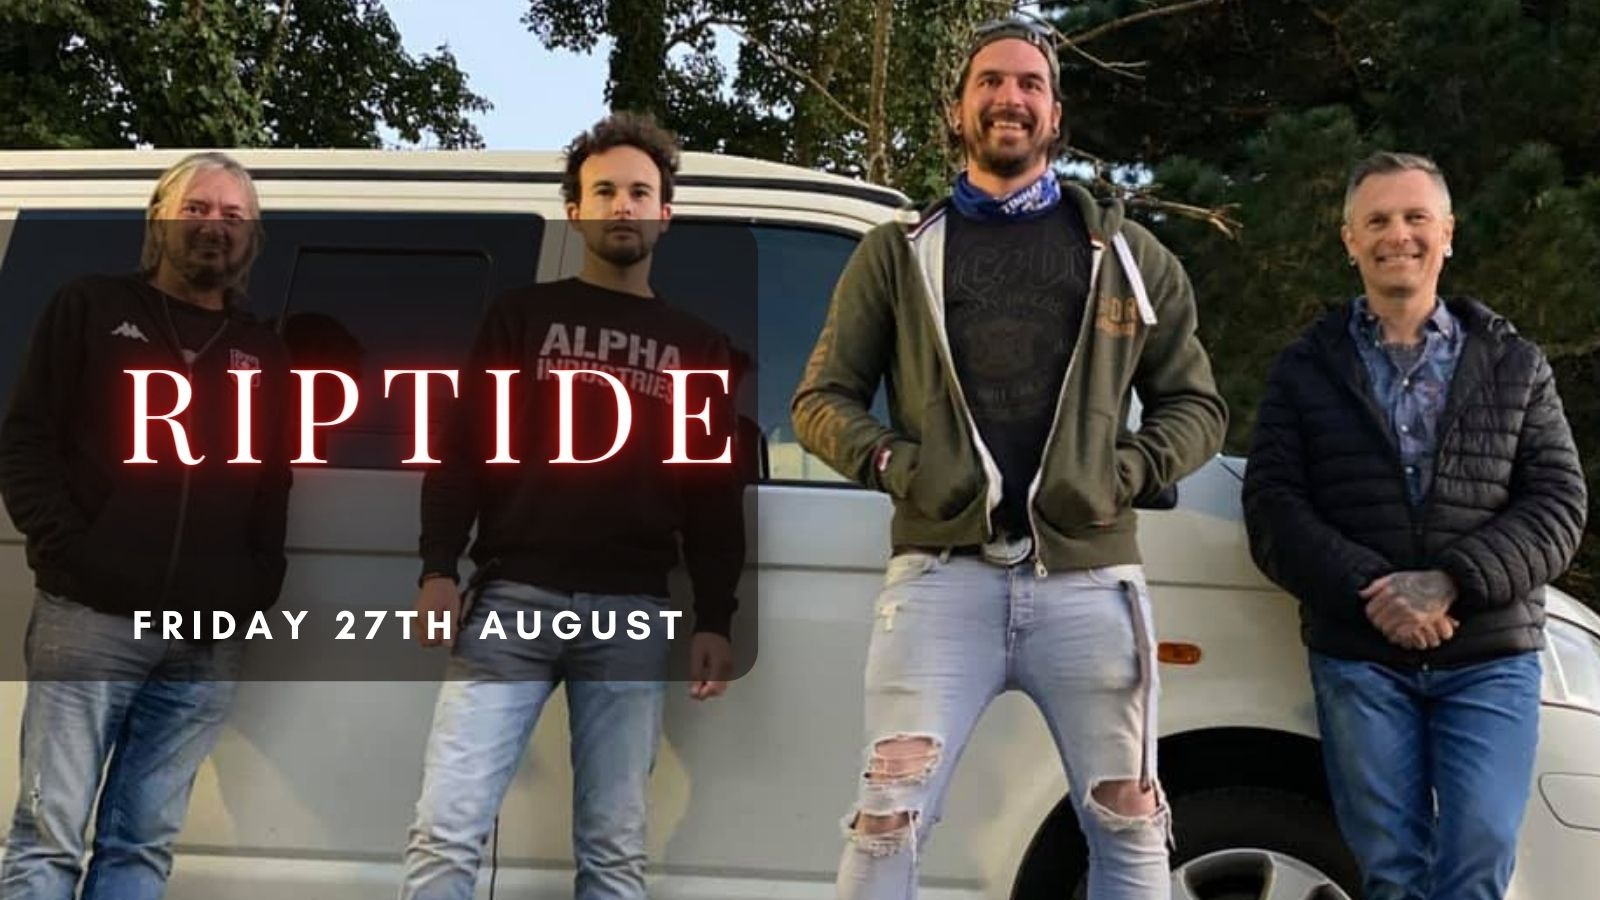 RIPTIDE   Plymouth, Annabel's Cabaret & Discotheque